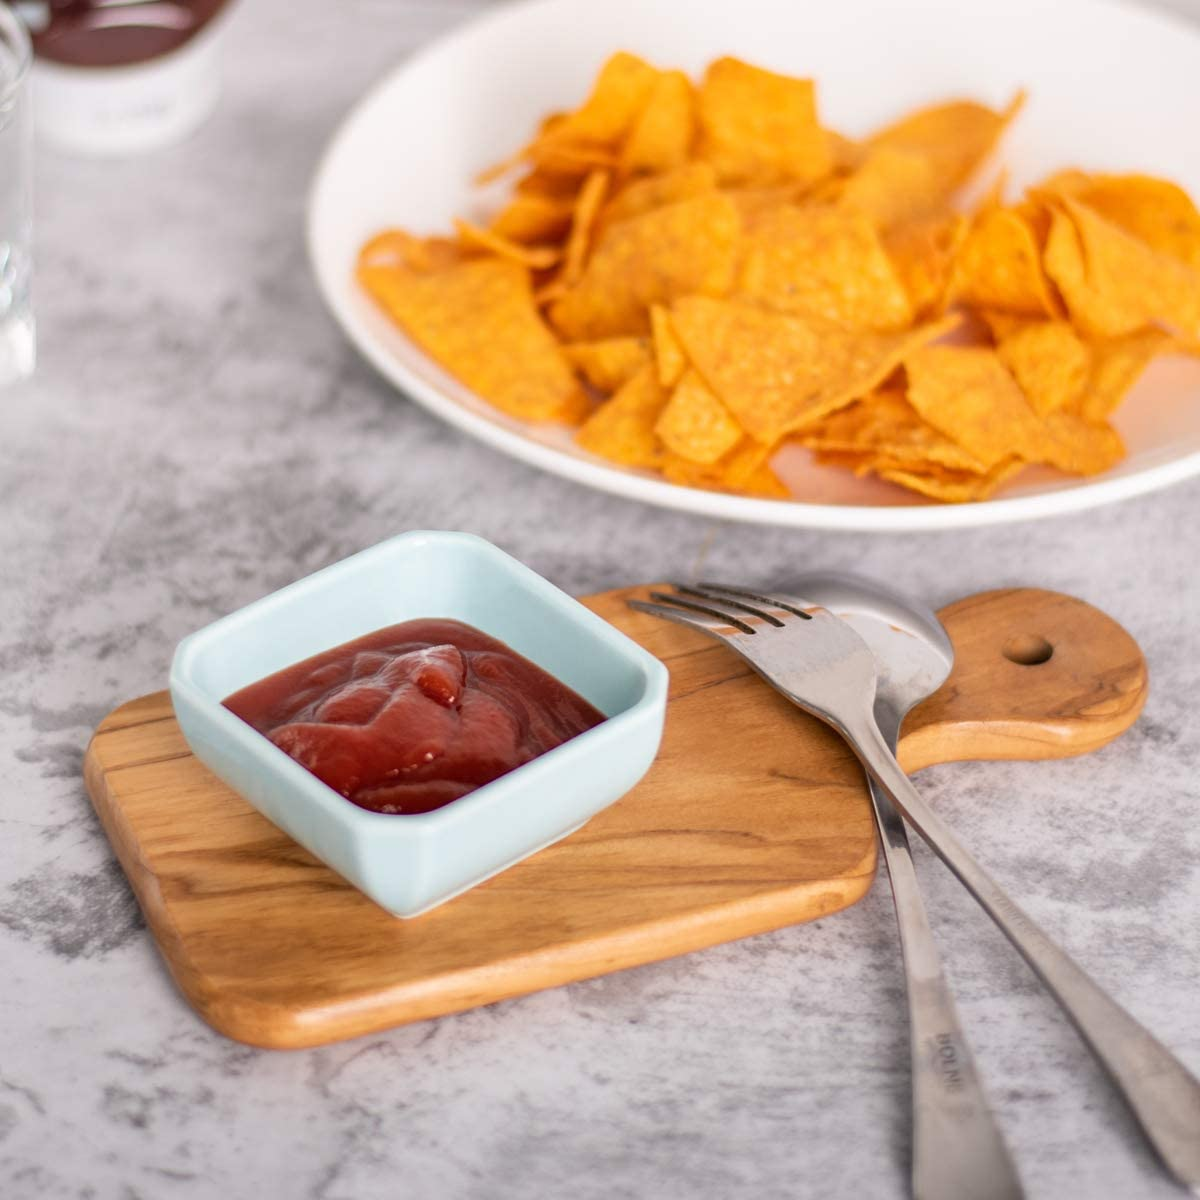 | Delling 3 Oz Ceramic Dip Bowls Set - Dipping Soy Sauce Bowl/Dishes Small Cups for Sushi Tomato Sauce, Soy, BBQ-Chip and Serving Set - Set of 6, Colorful: Chip & Dip Sets